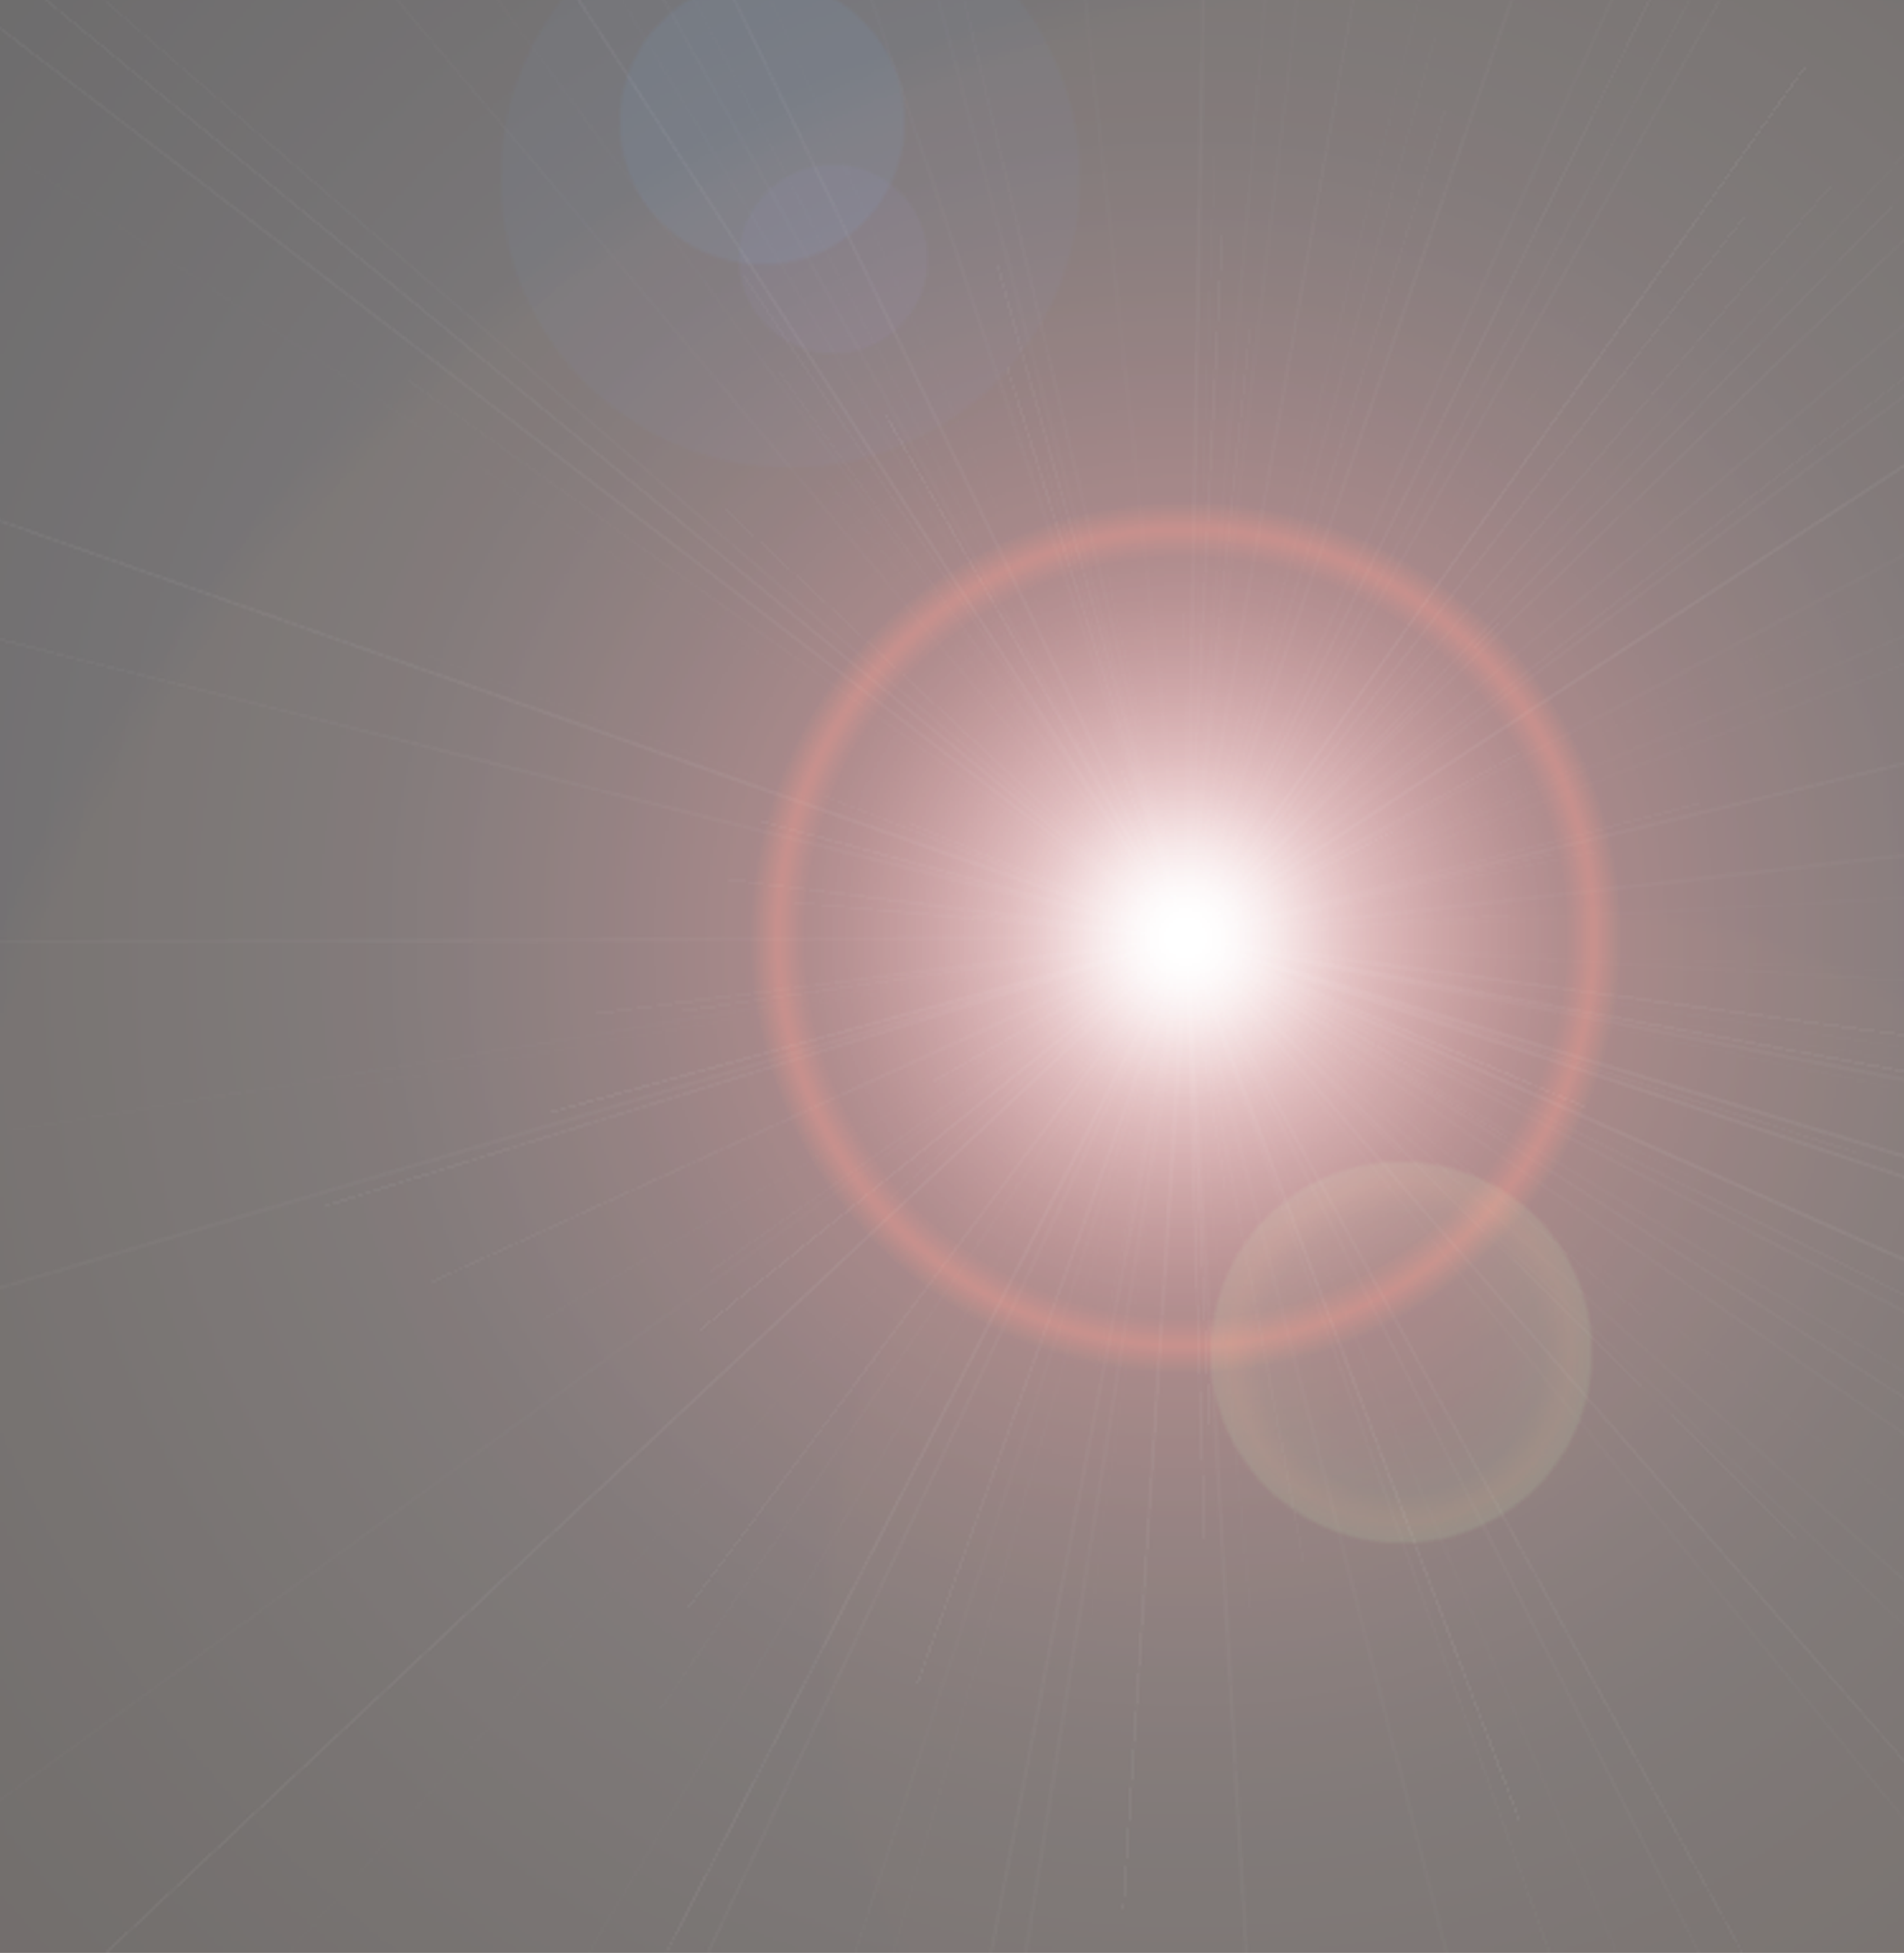 Pattern Effect Sunlight Creative Computer Circle Halo PNG Image